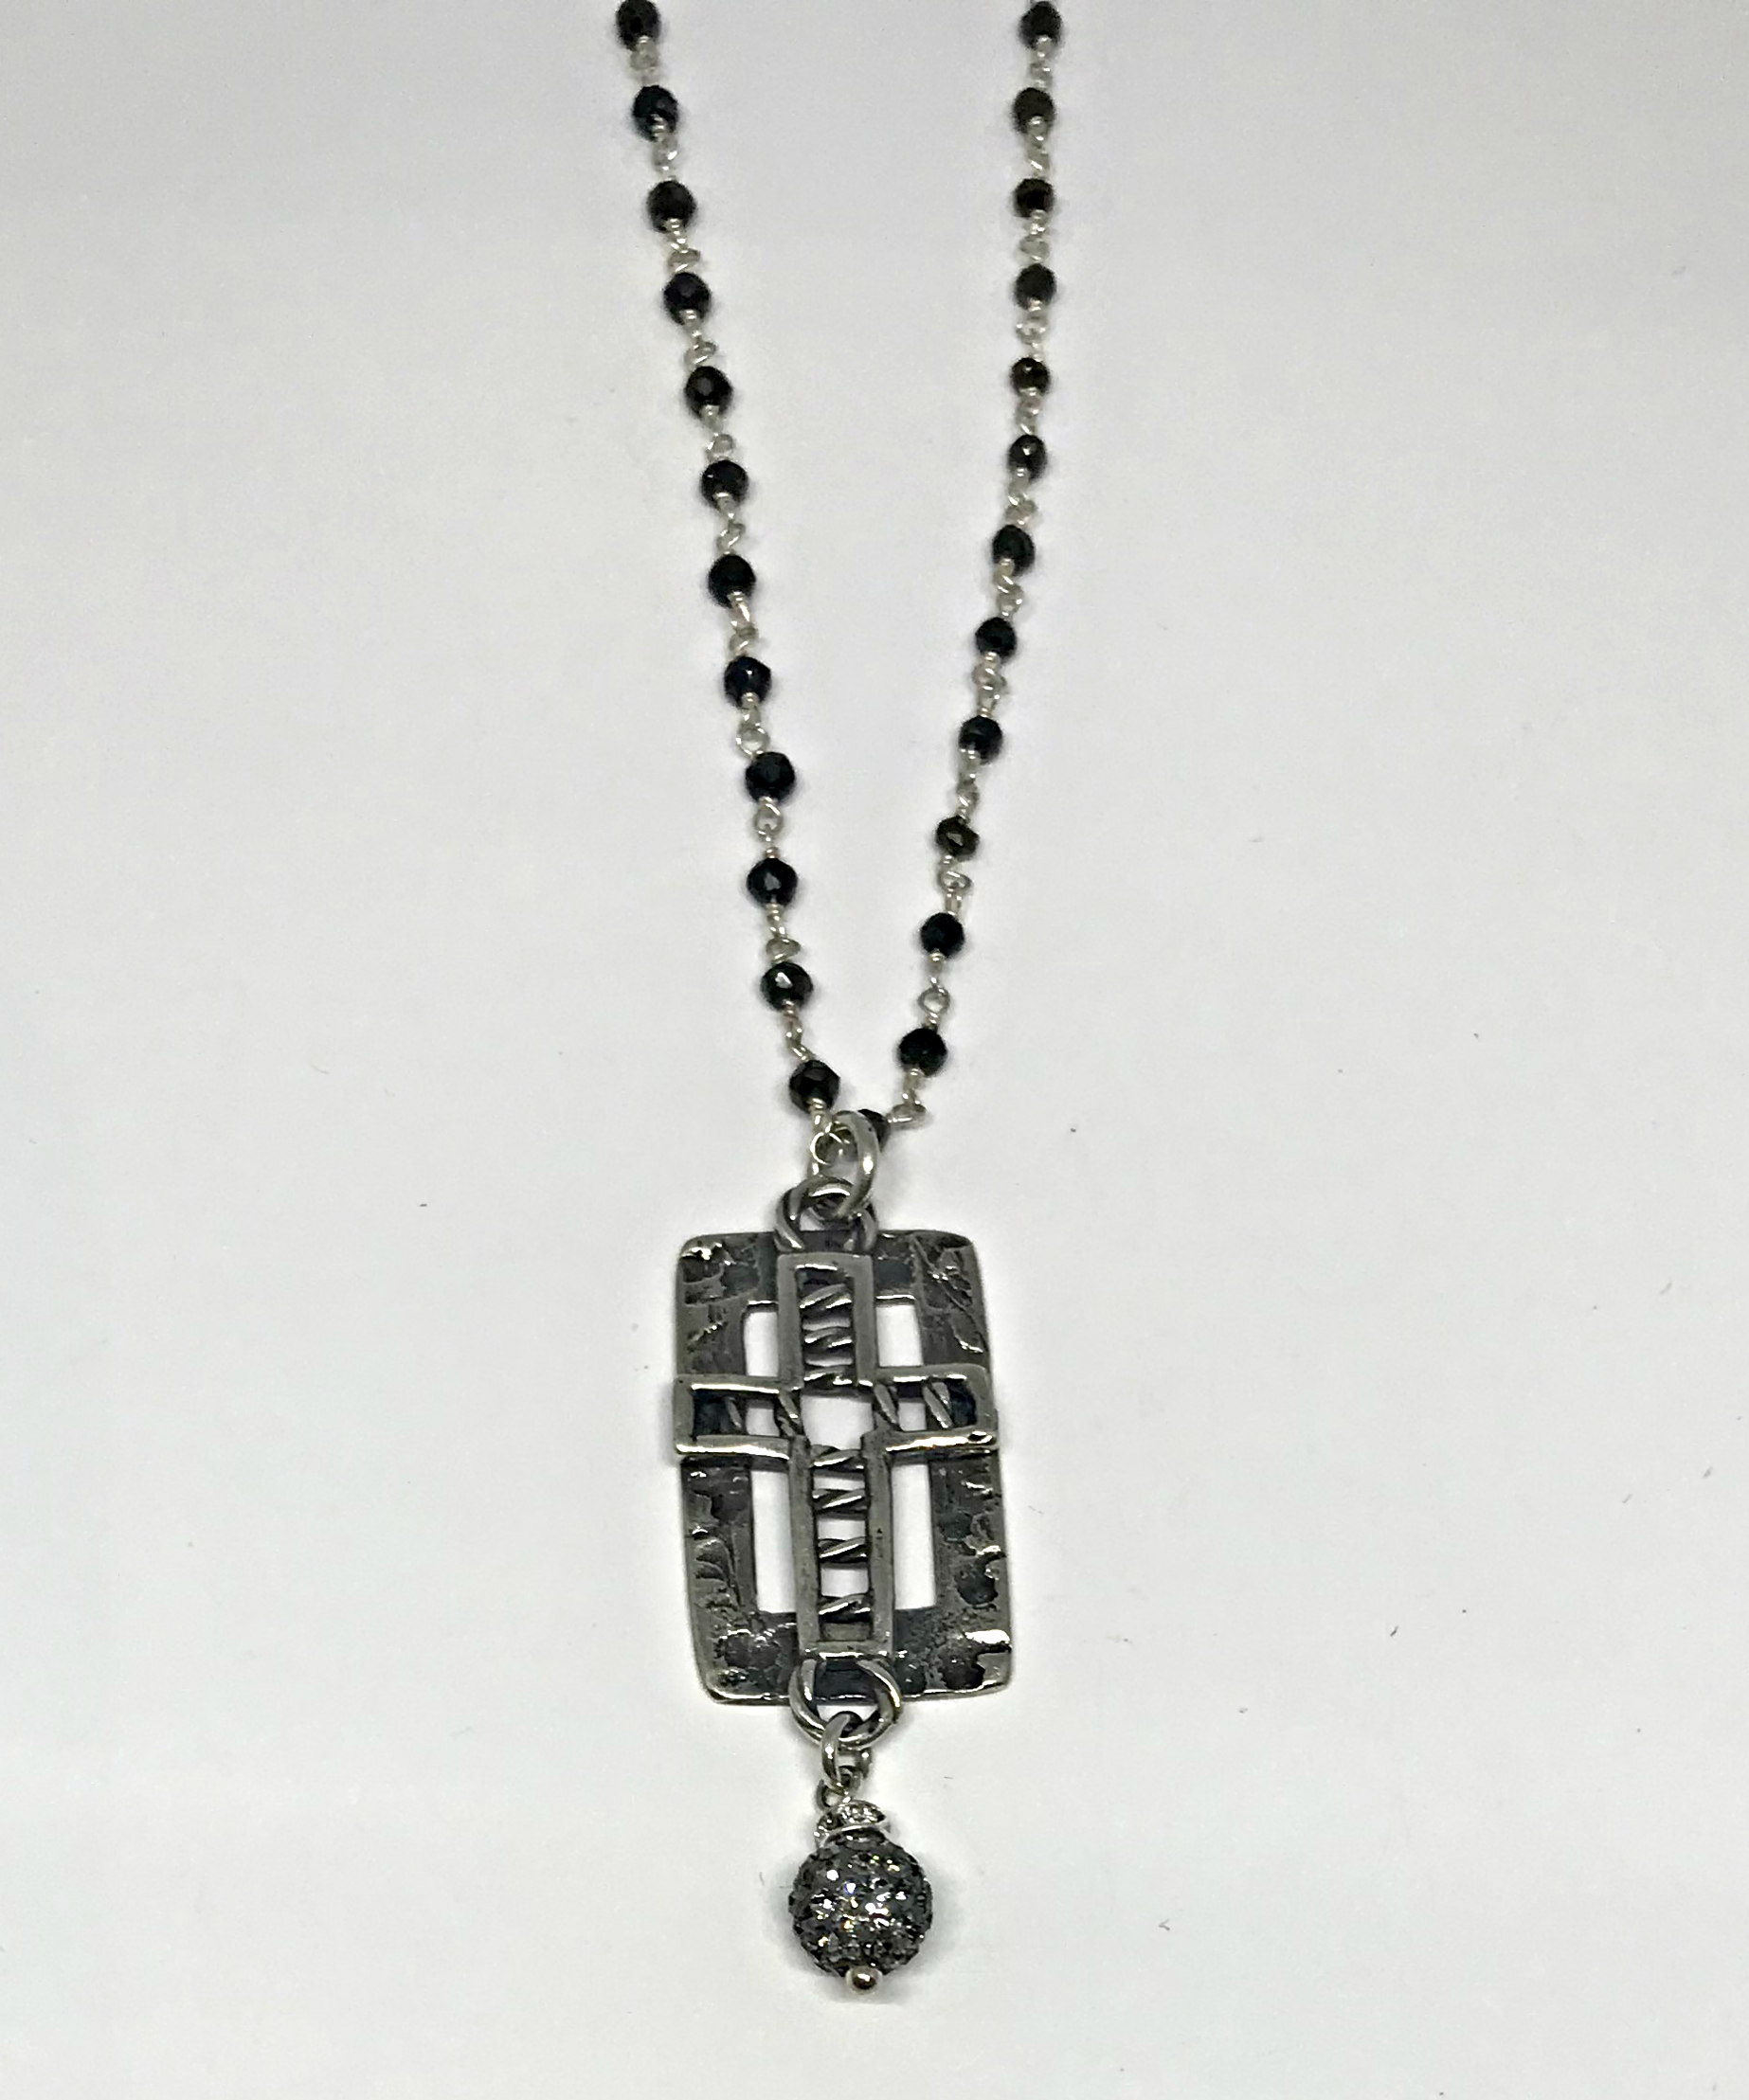 A Time of Need, sterling silver and hematite cross necklace by Karyn Chopik | Effusion Art Gallery + Cast Glass Studio, Invermere BC